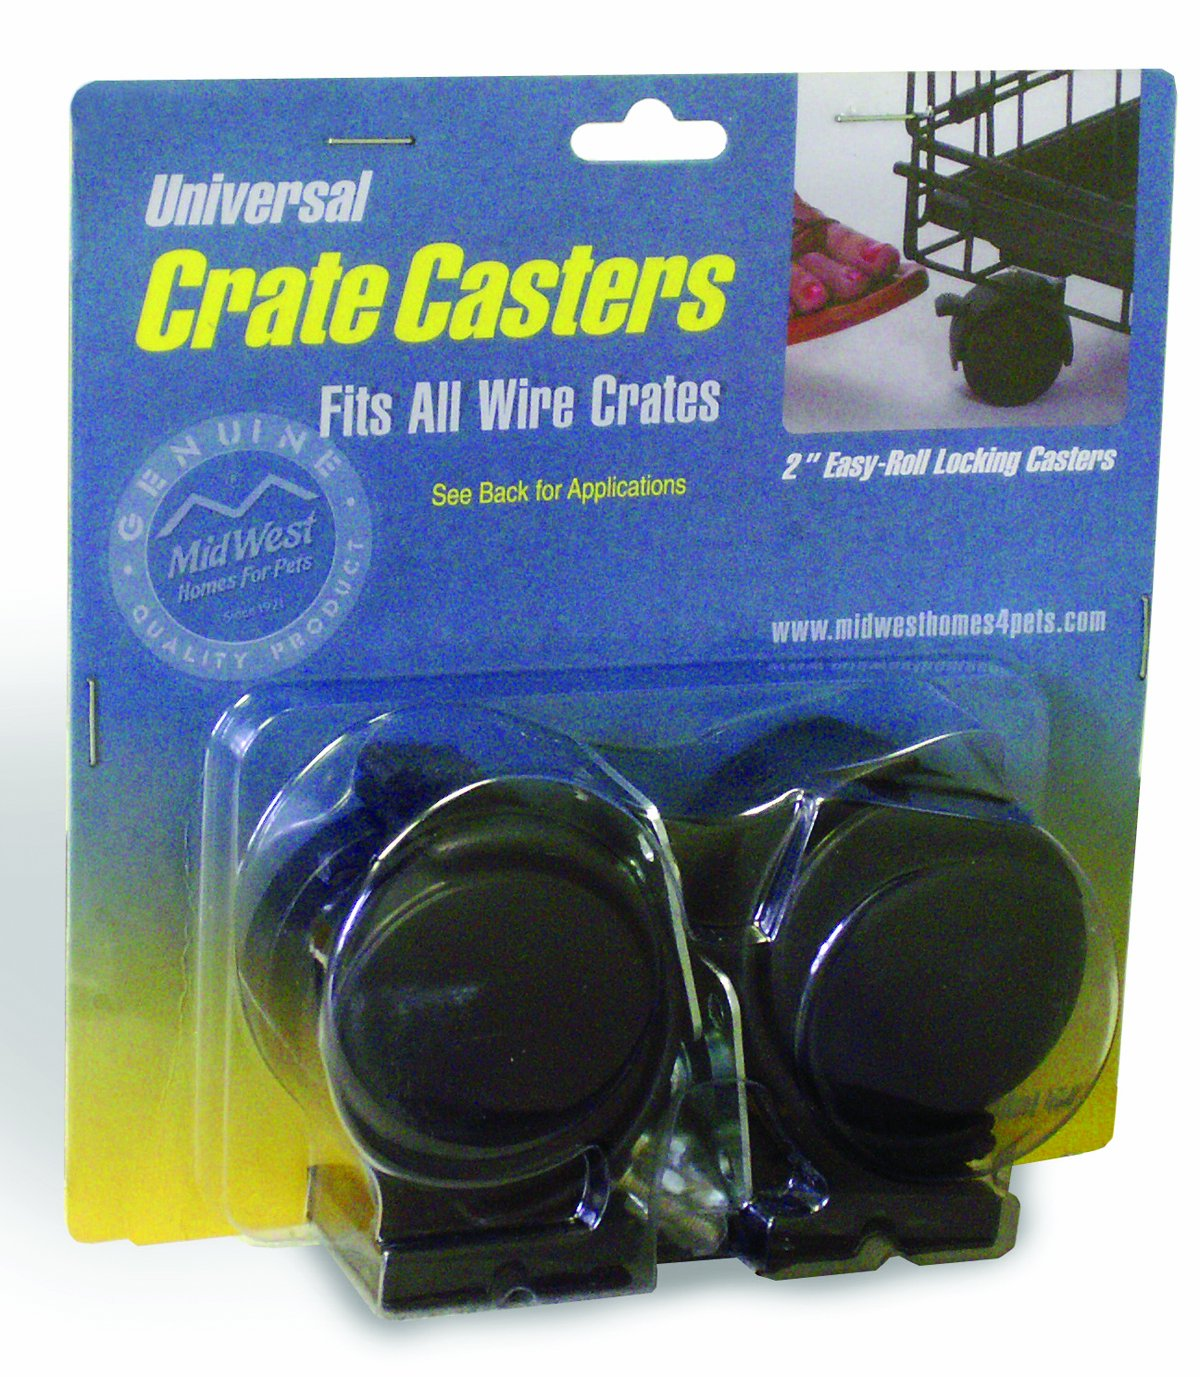 B000MCXXT6 MidWest Universal Crate Casters (2 Pack) 81LWF2mNxDL